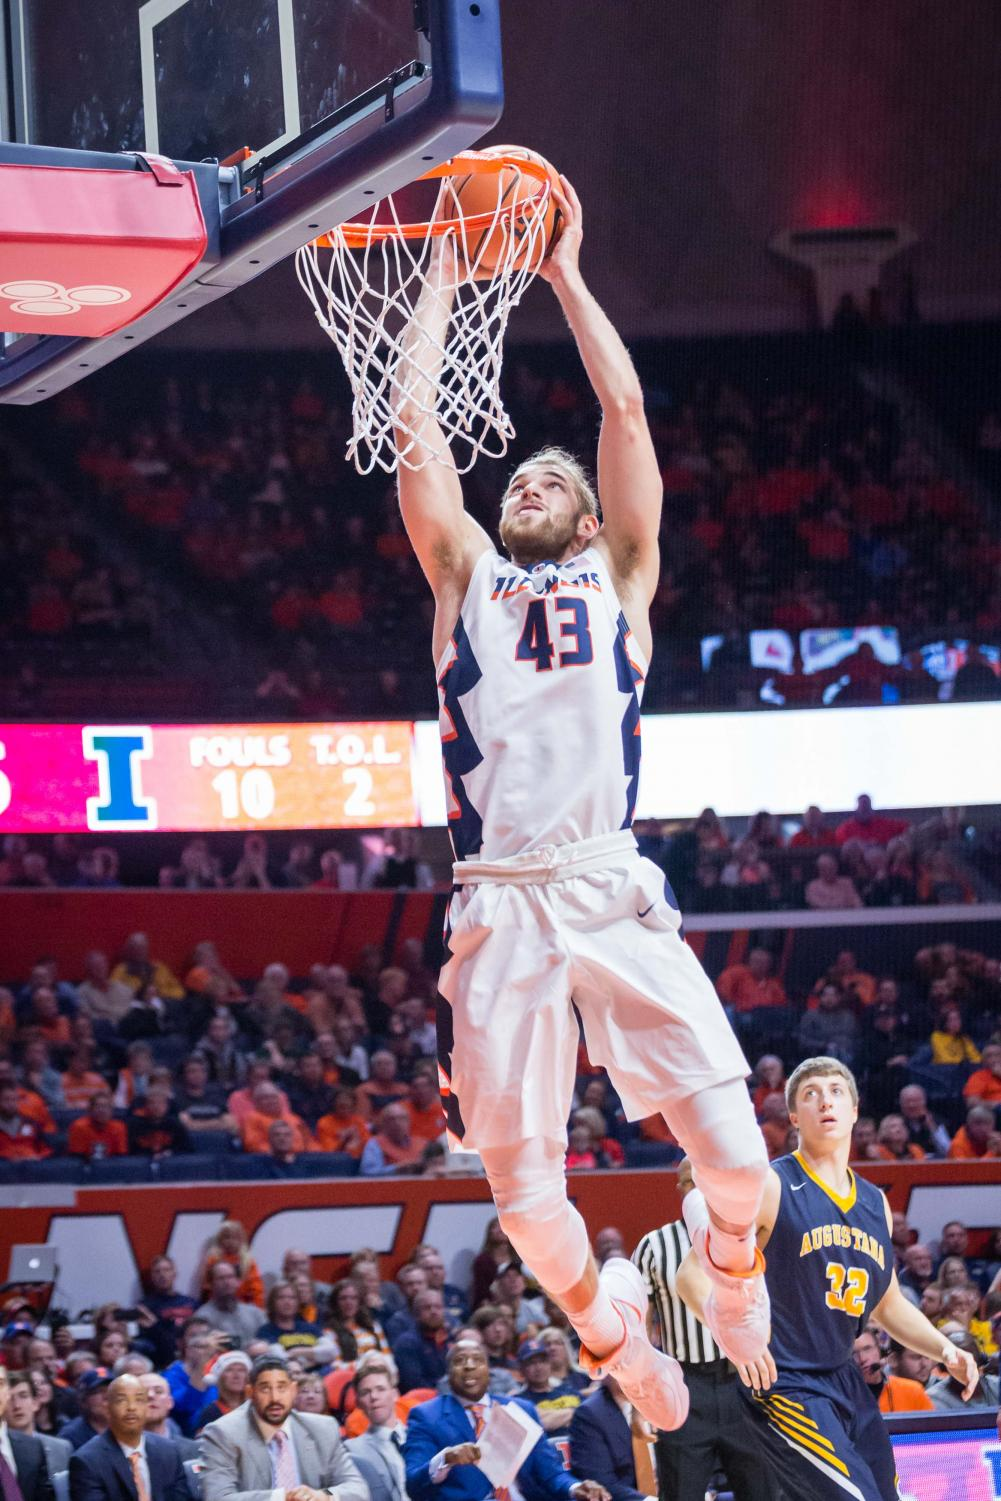 Illinois forward Michael Finke jumps for a slam dunk during the game against Augustana at the State Farm Center on Nov. 22.